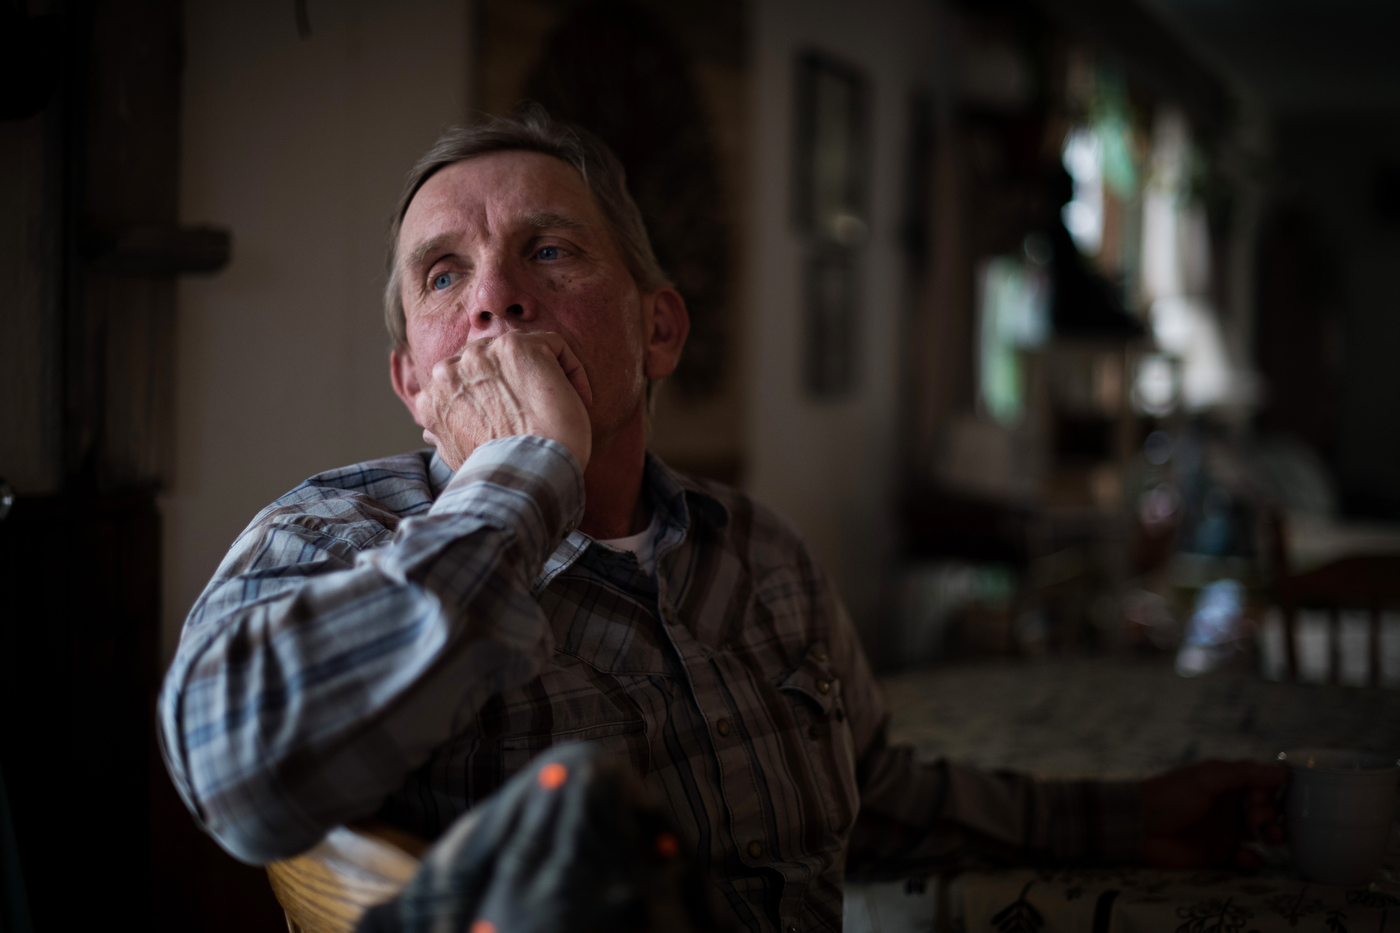 """45º32'31.3""""N 102º29'52.1""""W. 110 miles from the nearest McDonald's.  Sion Hanson sits in a neighbor's home and drinks coffee before dinner in Bison, SD on April 6, 2018. A maintenance worker for the city of Bison, he wakes up early every morning to drink coffee, smoke a cigarette, and play cribbage online, playing over 35,000 games on Yahoo, but at almost 60 years old, he still dreams of owning a small ranch with a herd of bison."""